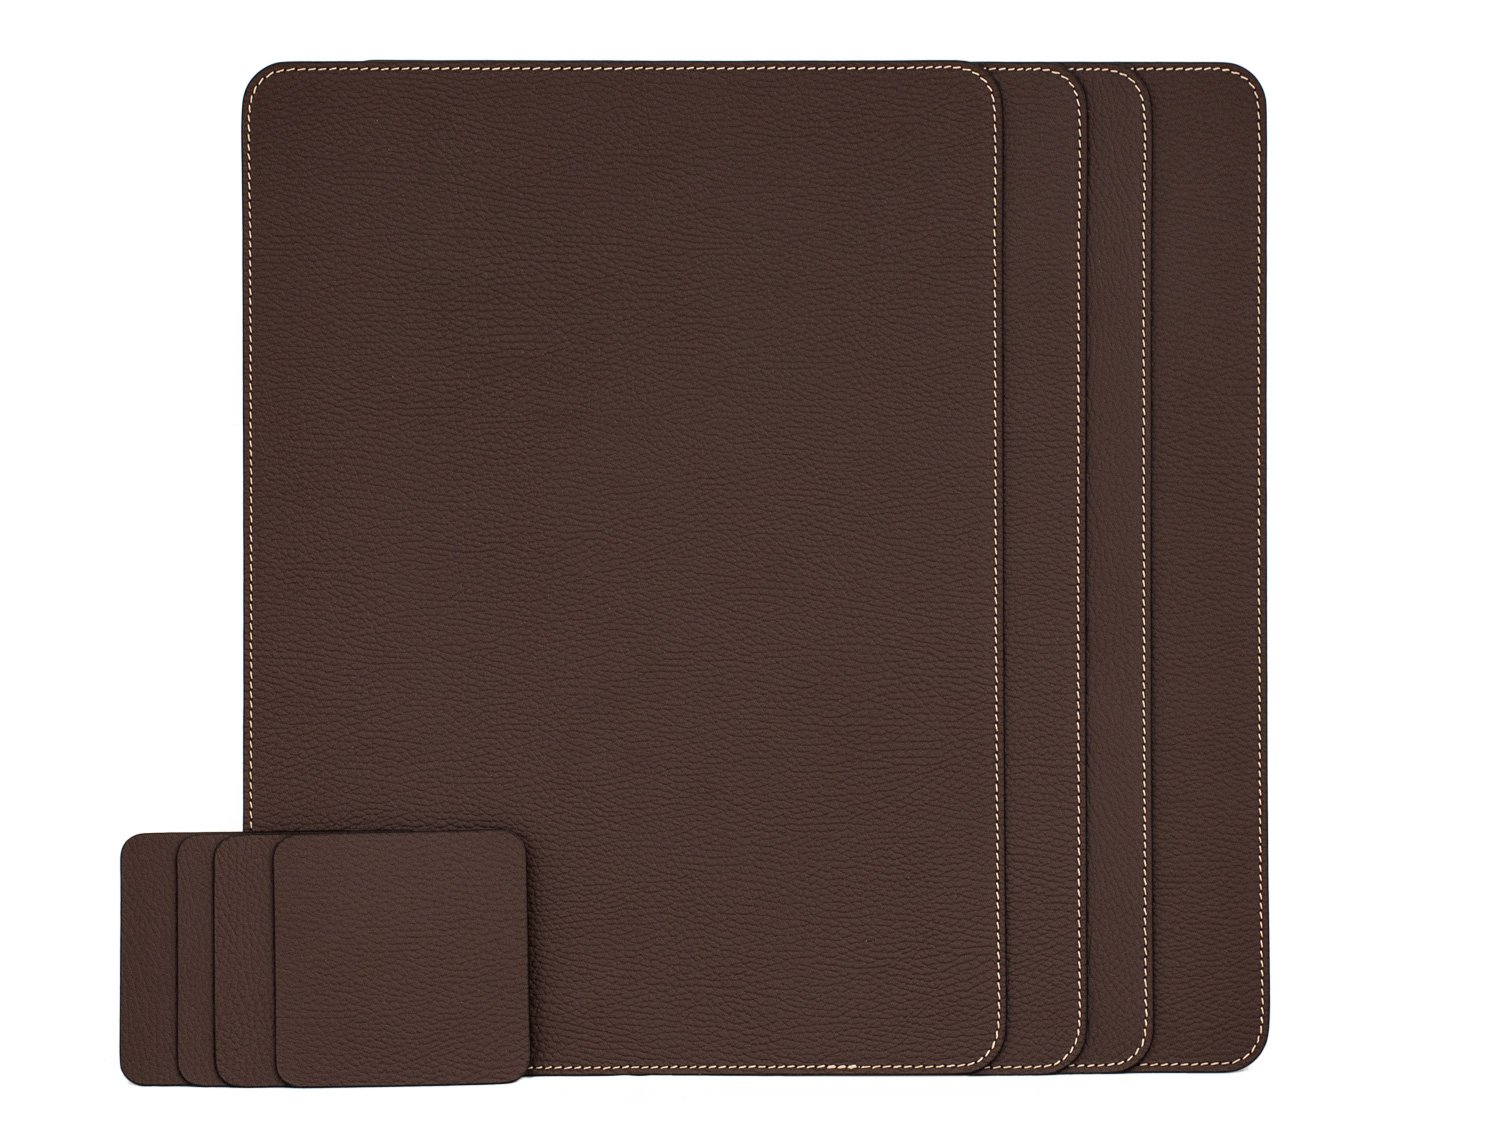 Nikalaz Set of Brown Placemats and Coasters, 4 Table Mats and 4 Coasters, Italian Recycled Leather, Place Mats 18'' x 13'' and Coasters 3.9'' x 3.9'', Dining table set